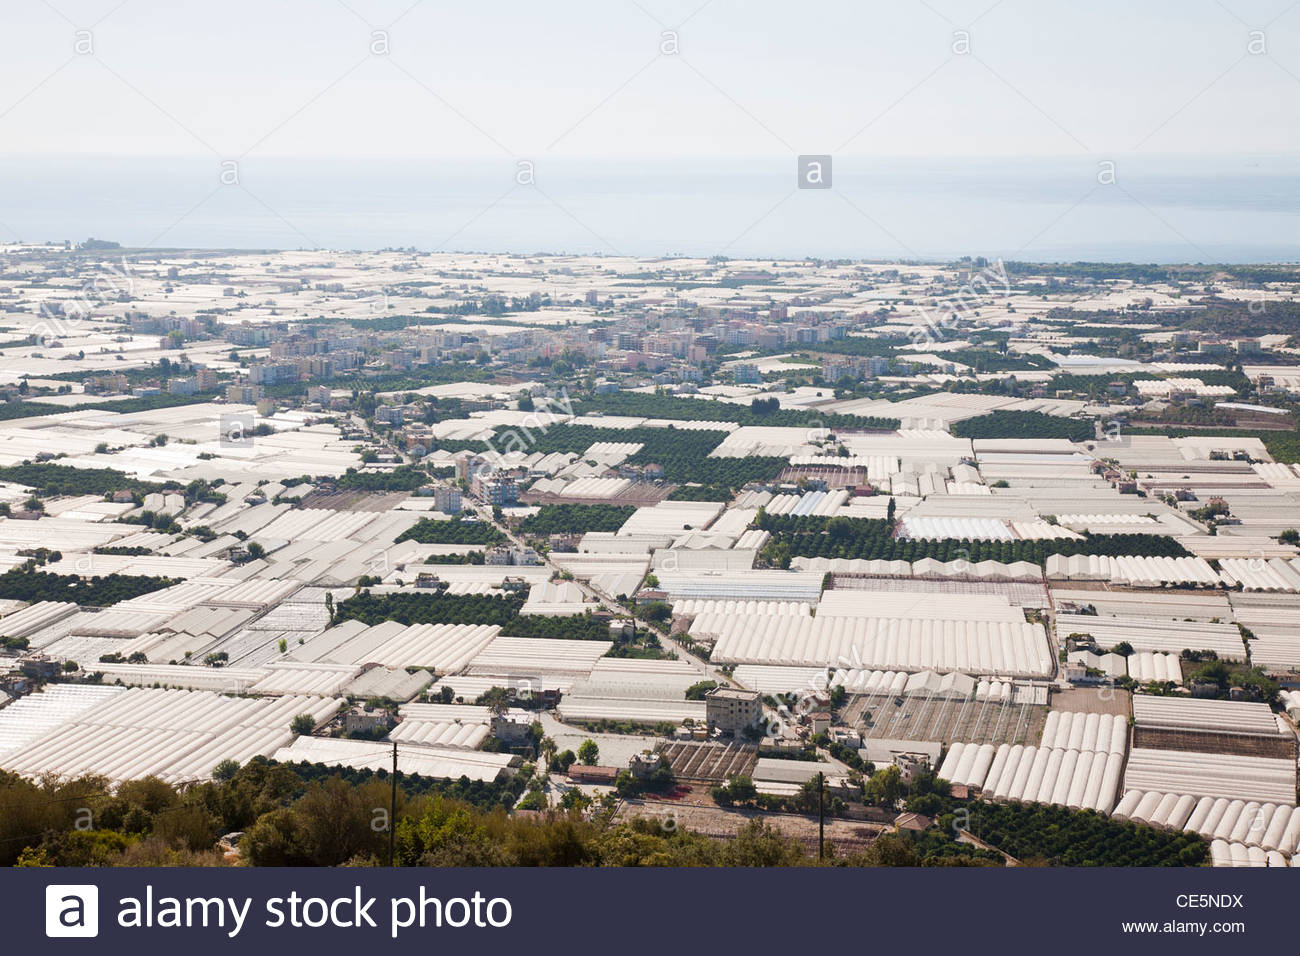 greenhouses,kale or demre,mediterrean coast,turkey,asia - Stock Image